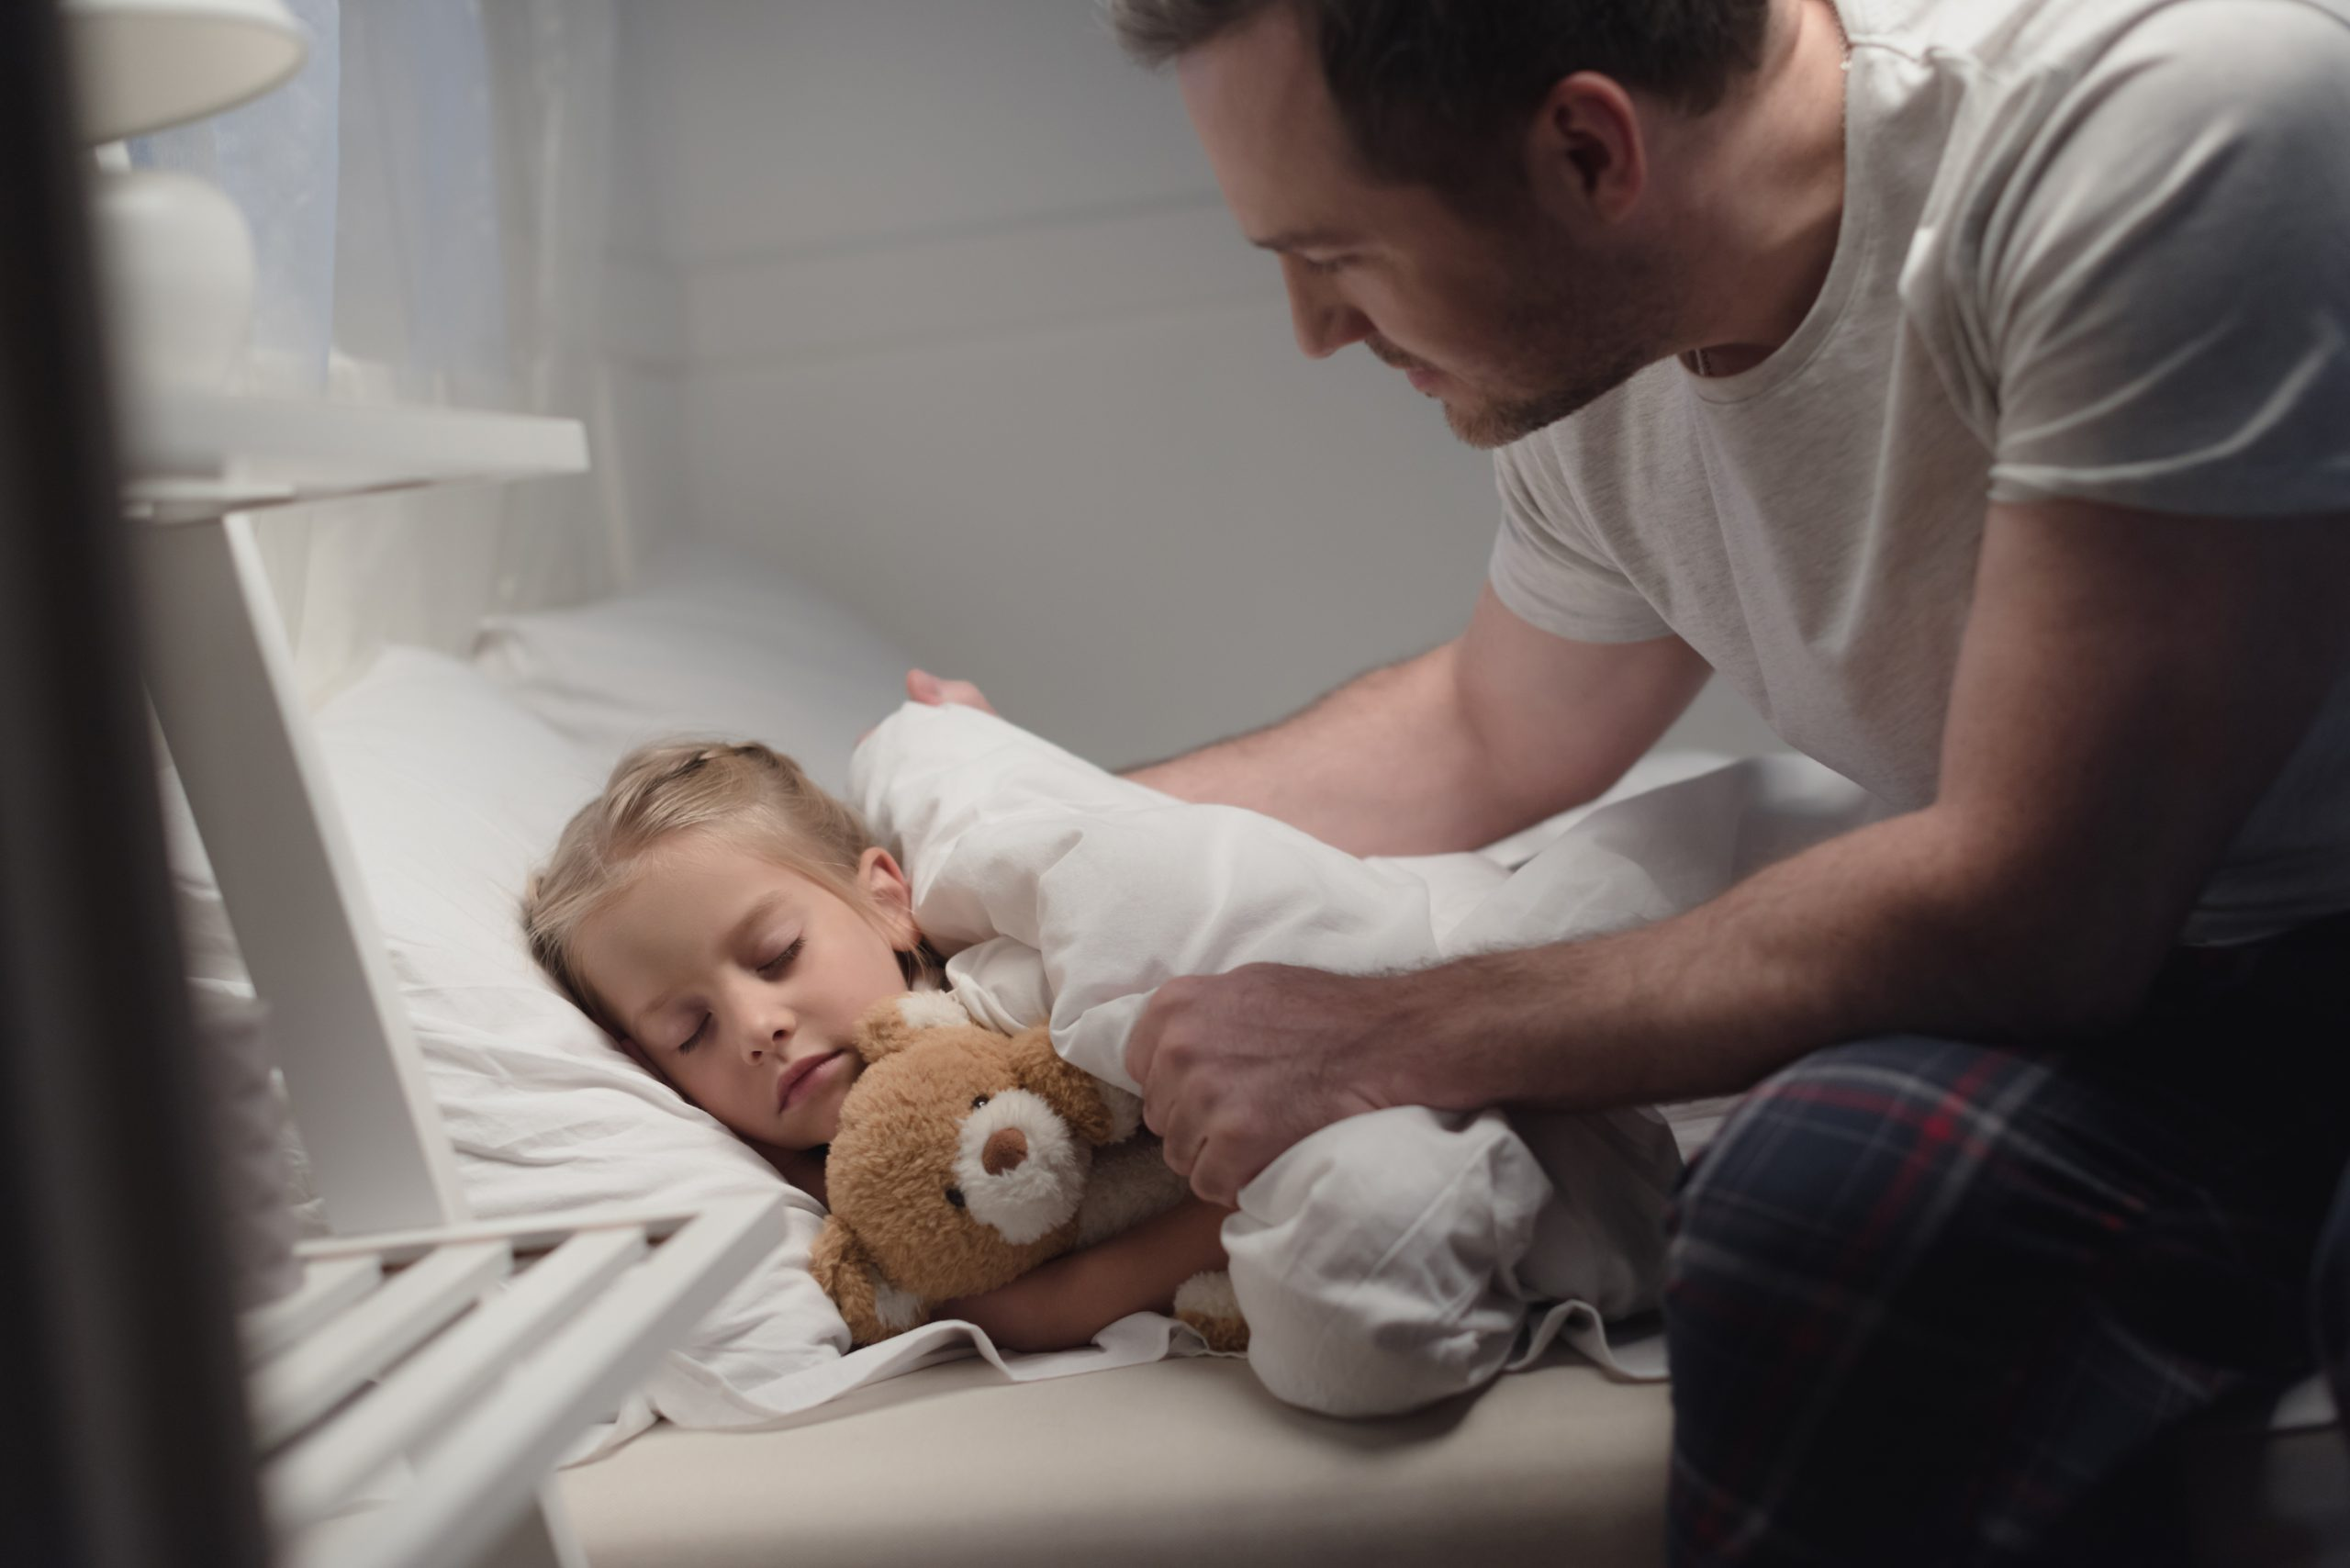 Are you sick of having major bedtime battles? There are many different things you can do to fix bedtime battles and have peaceful bedtimes again.